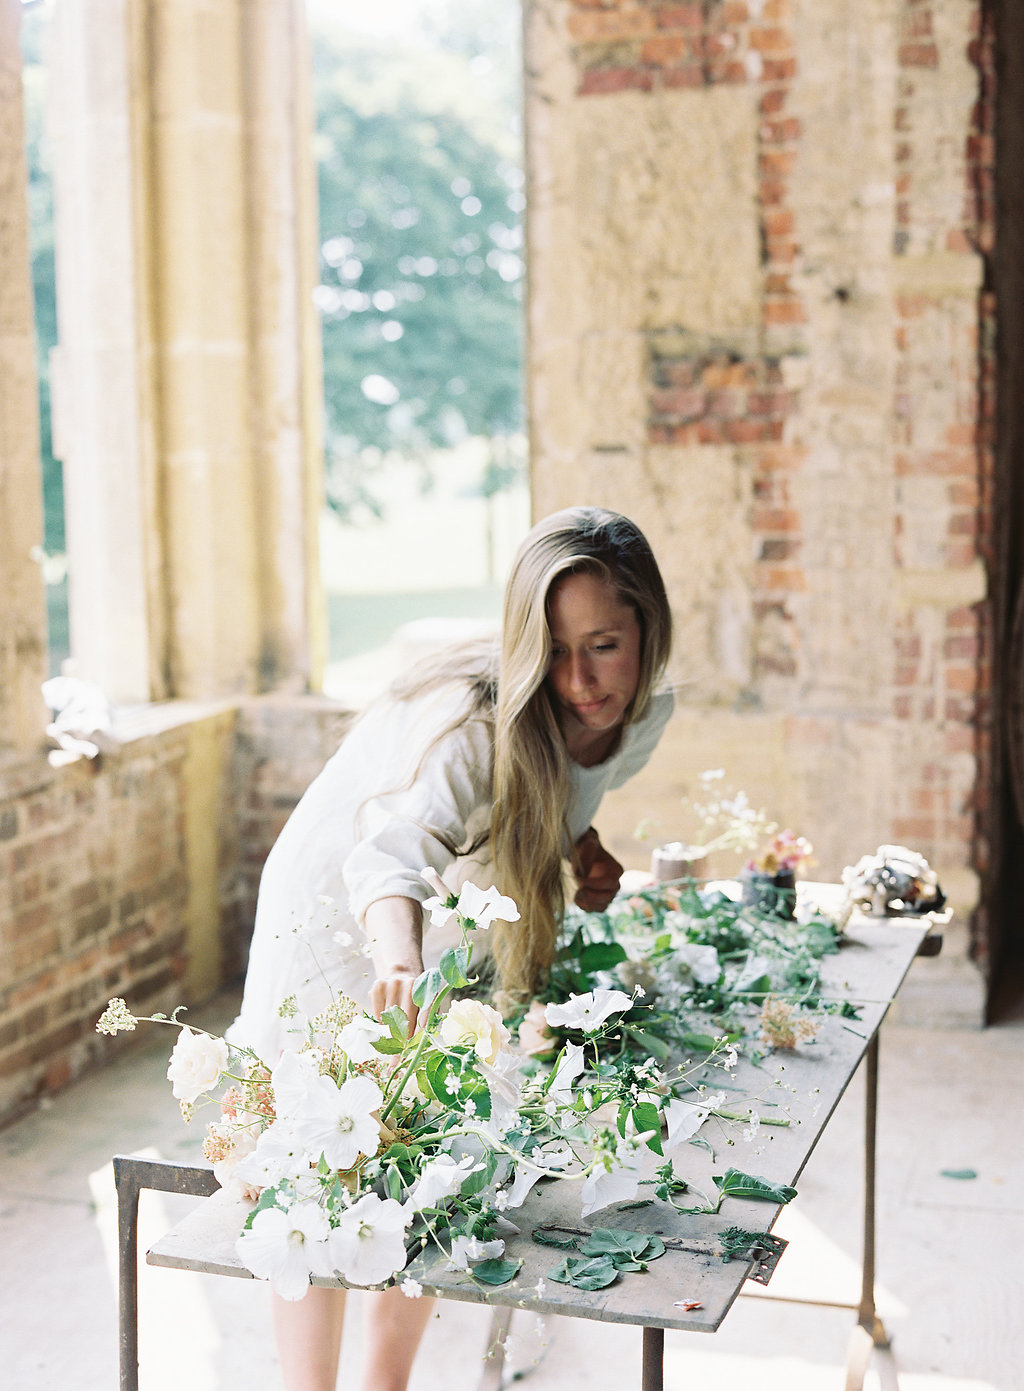 Litha Floral Workshop and Buttonhole Tutorial on cottagehill.co56.jpg